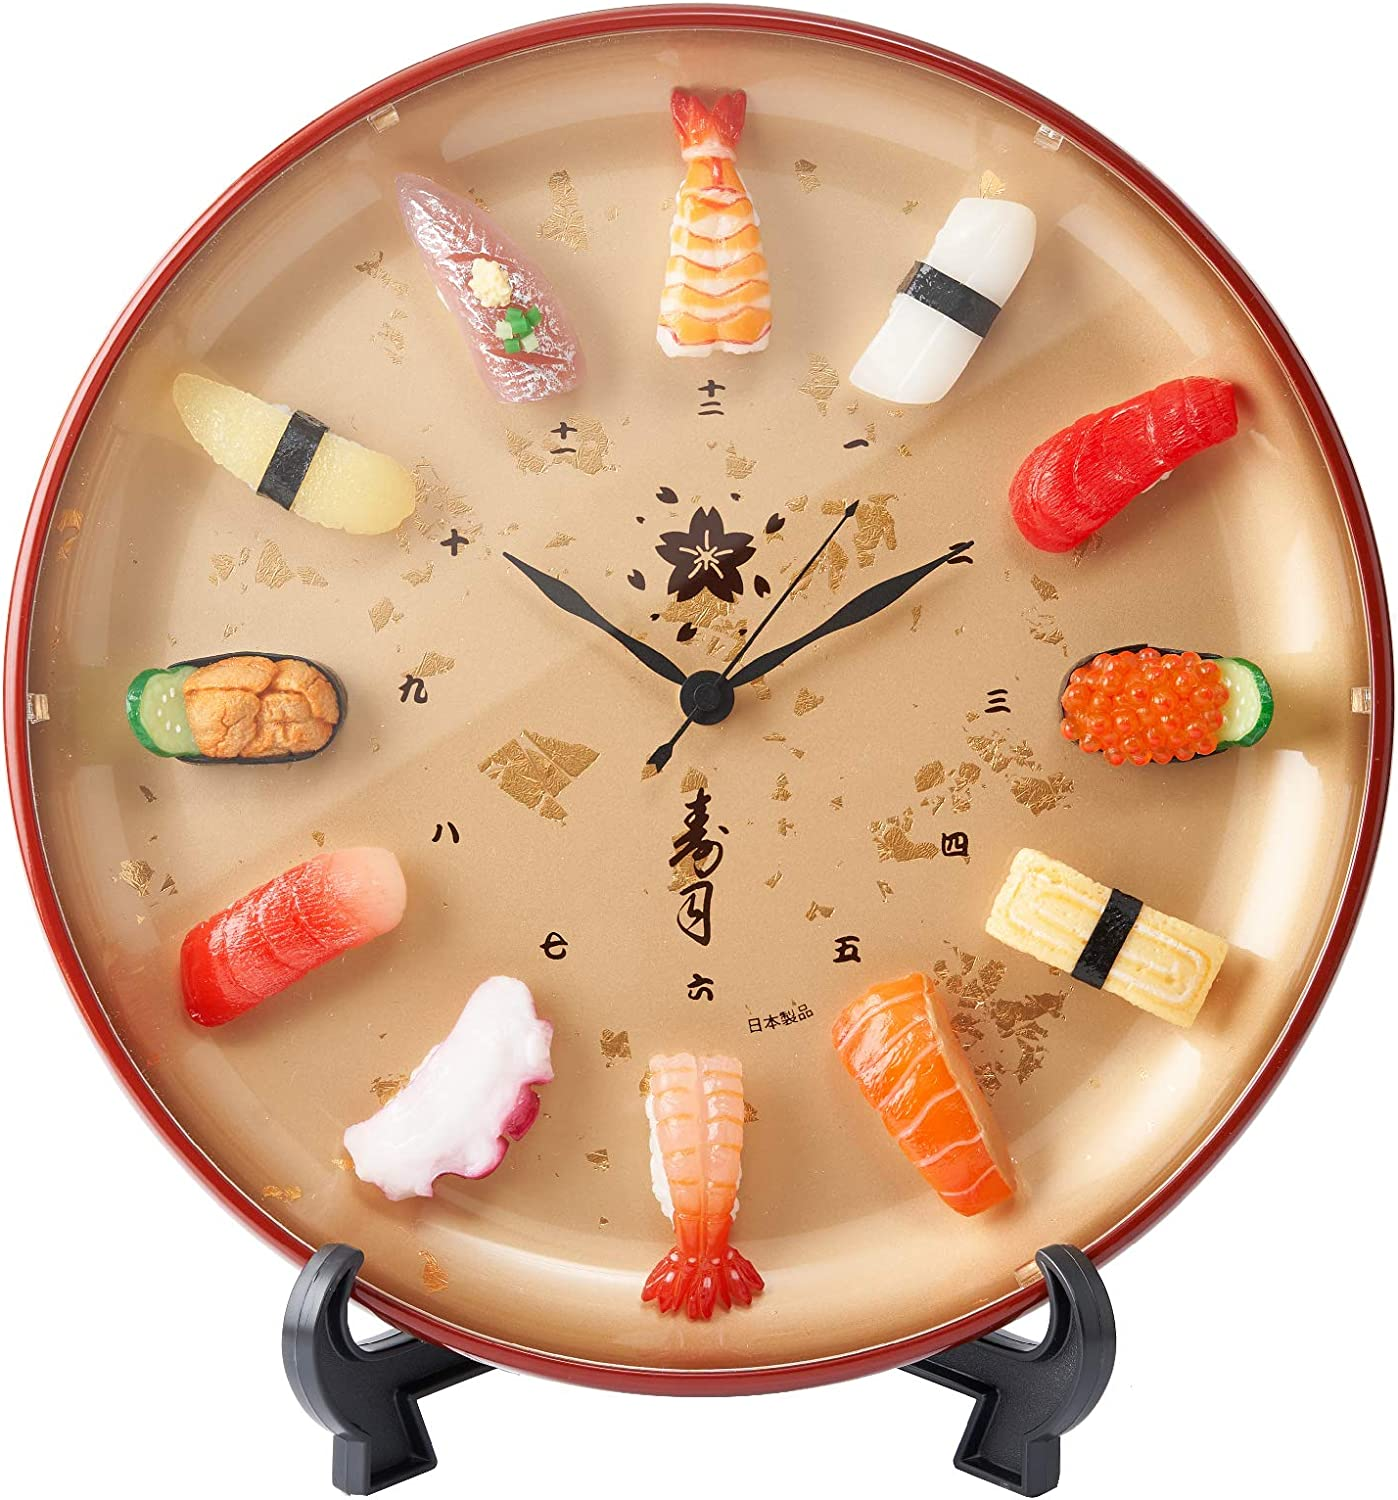 Sushi Clock Premium. Realistic Food Samples Made by Experts. A Great Gift for People who Like Sushi. A Unique Clock with Realistic Sushi replicas. A Japanese Culture Gift. Comes with Box and Stand.